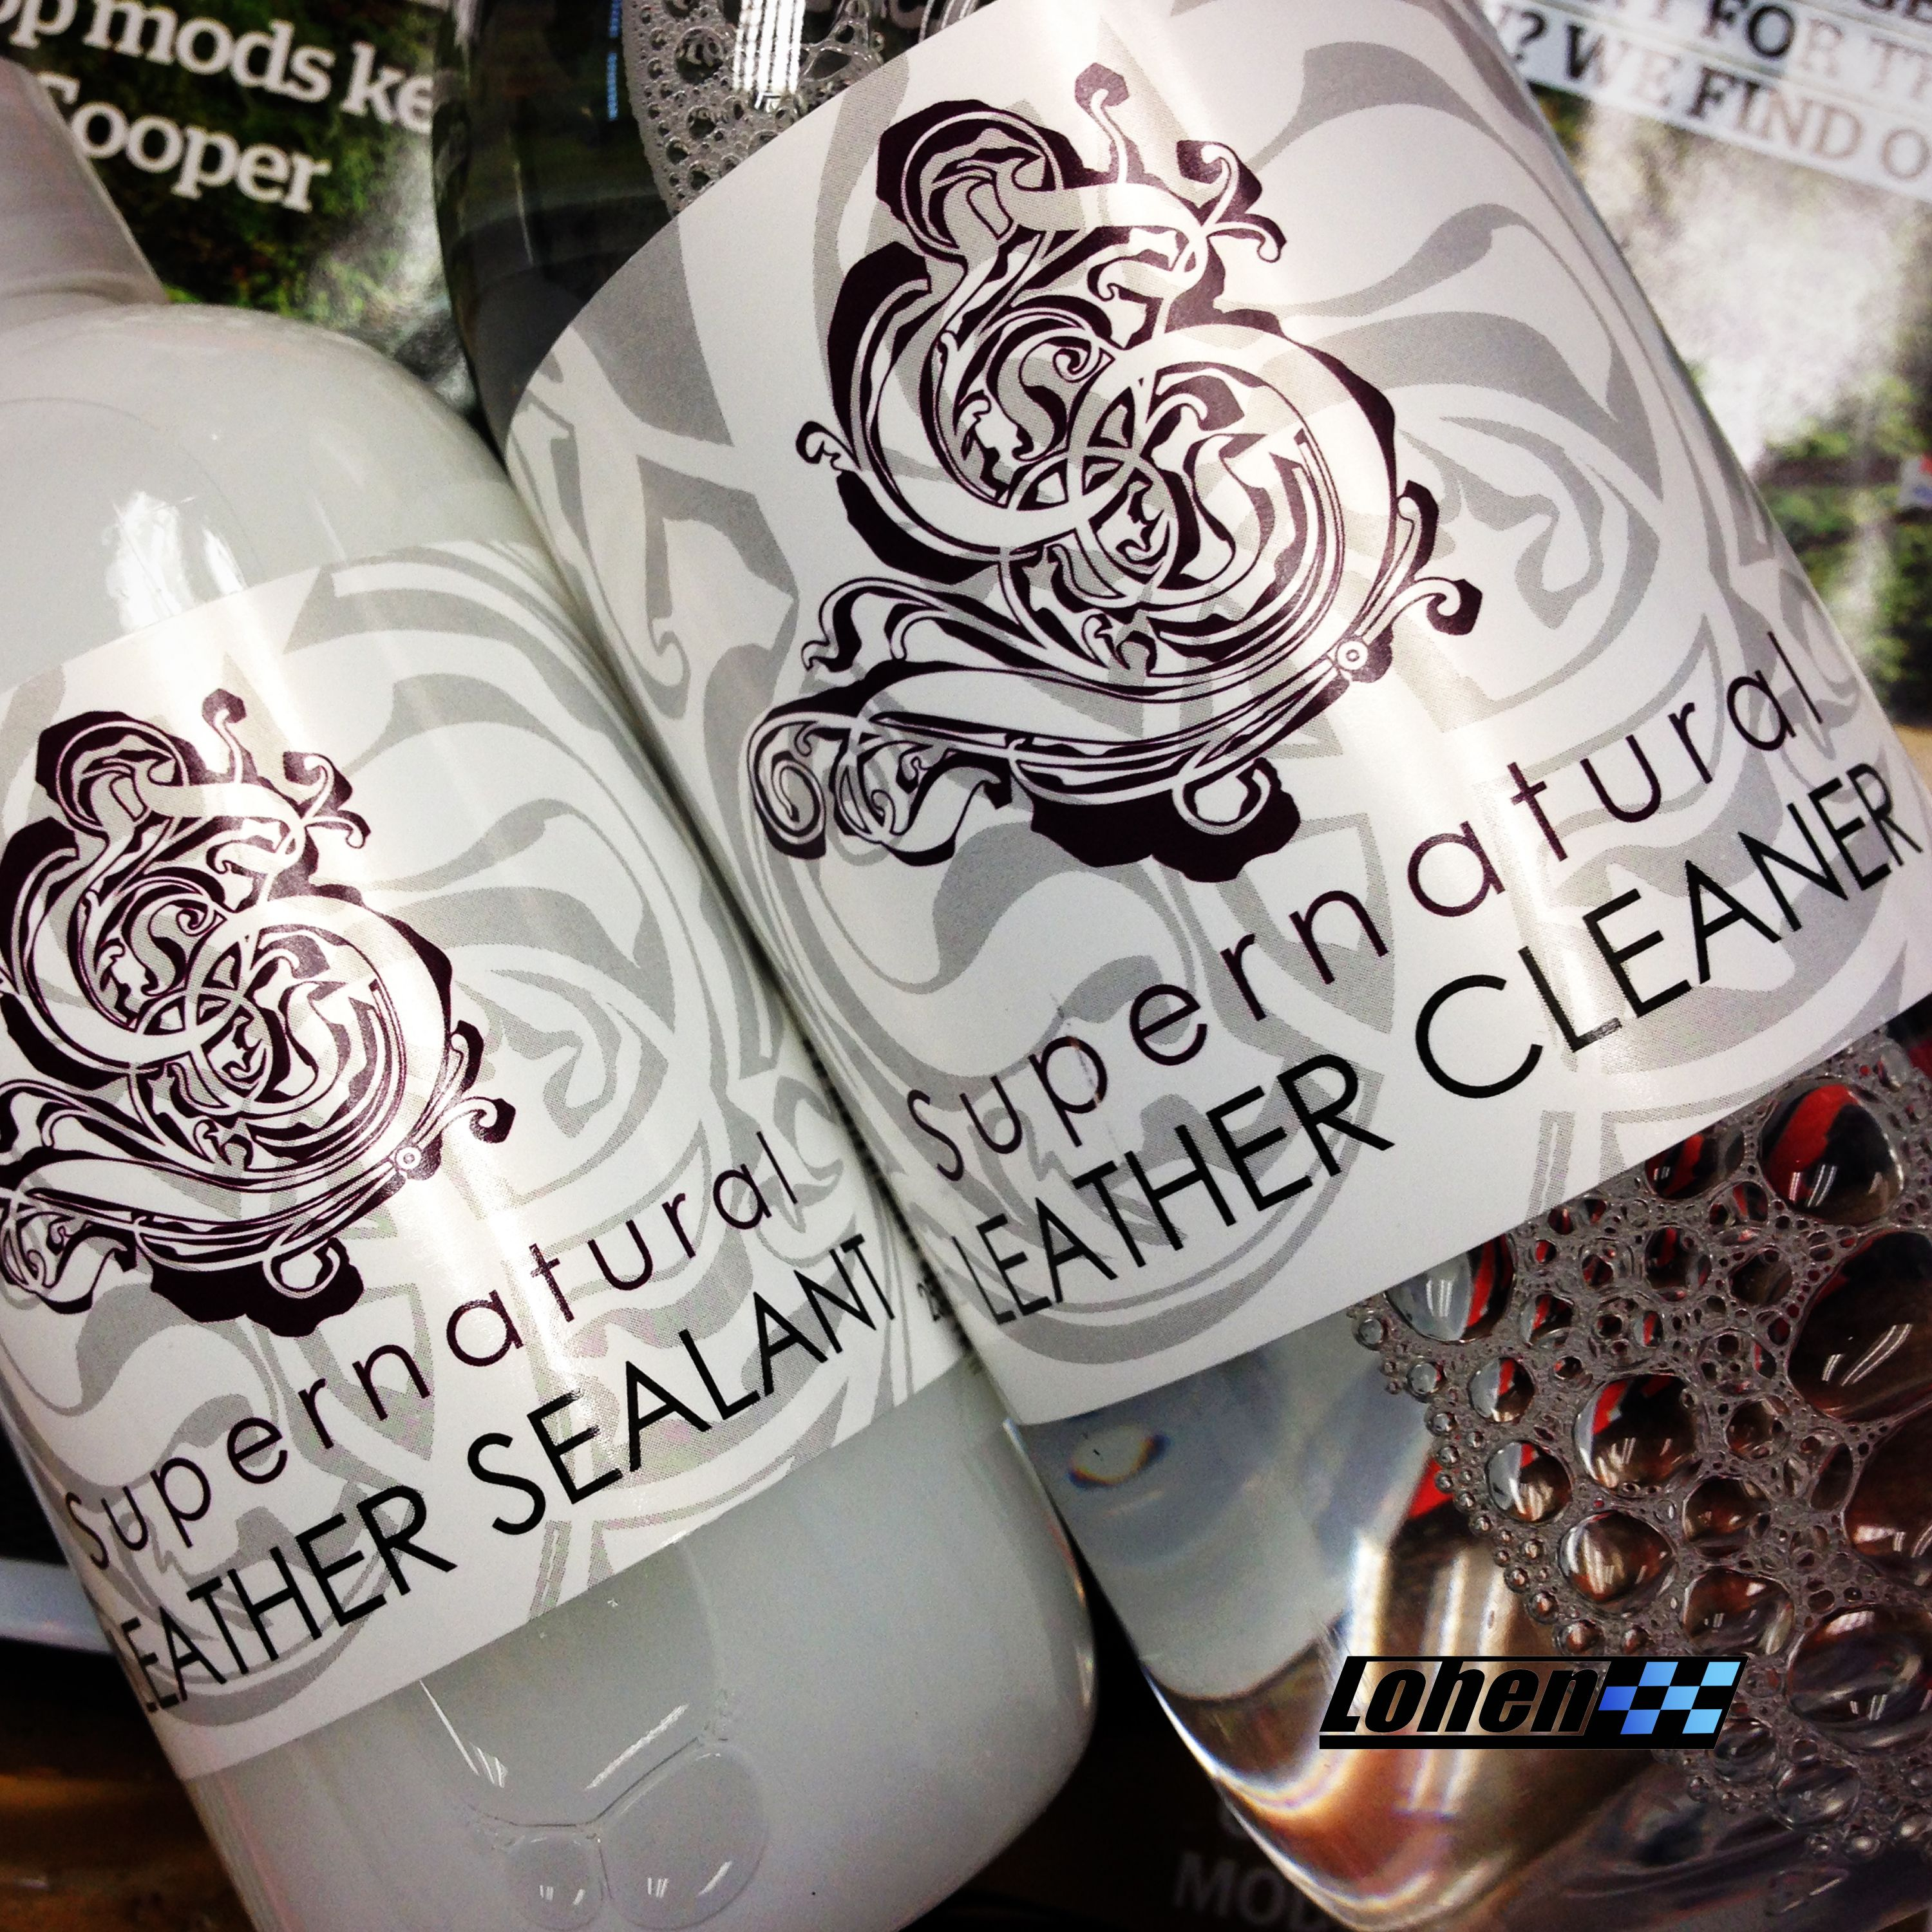 If you're looking for the perfect selection of MINI cleaning products, look no further than Lohen's range of Dodo Juice!   We've recently added another 2 fantastic solutions - Supernatural Leather Sealant and Supernatural Leather Cleaner. Check out our website for the full range here - http://bit.ly/dodojuice  #Lohen - #LohenMINI - #MINI - #totallydodo